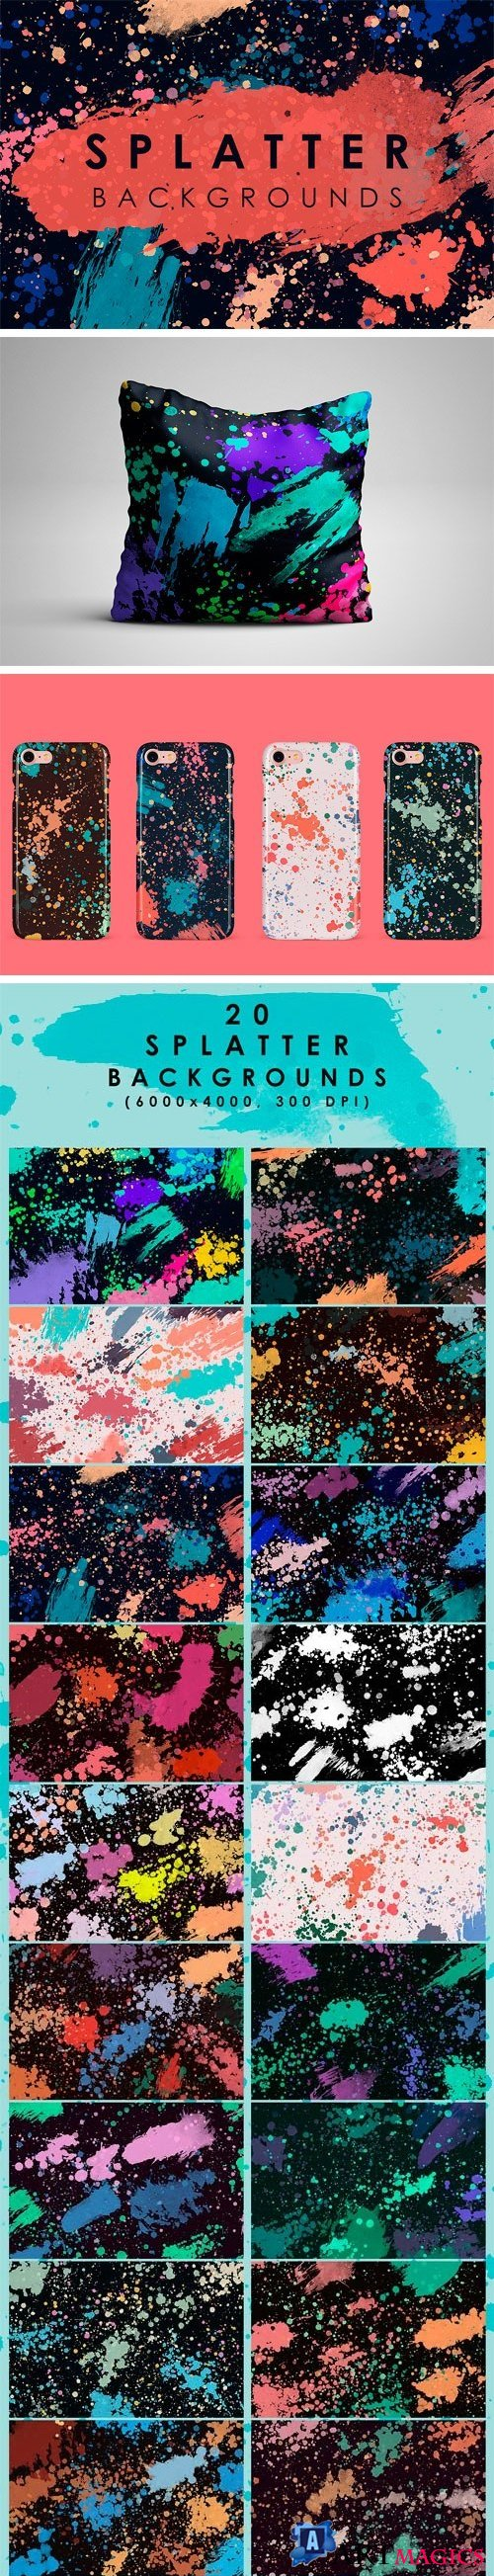 Splatter Backgrounds - 2113042